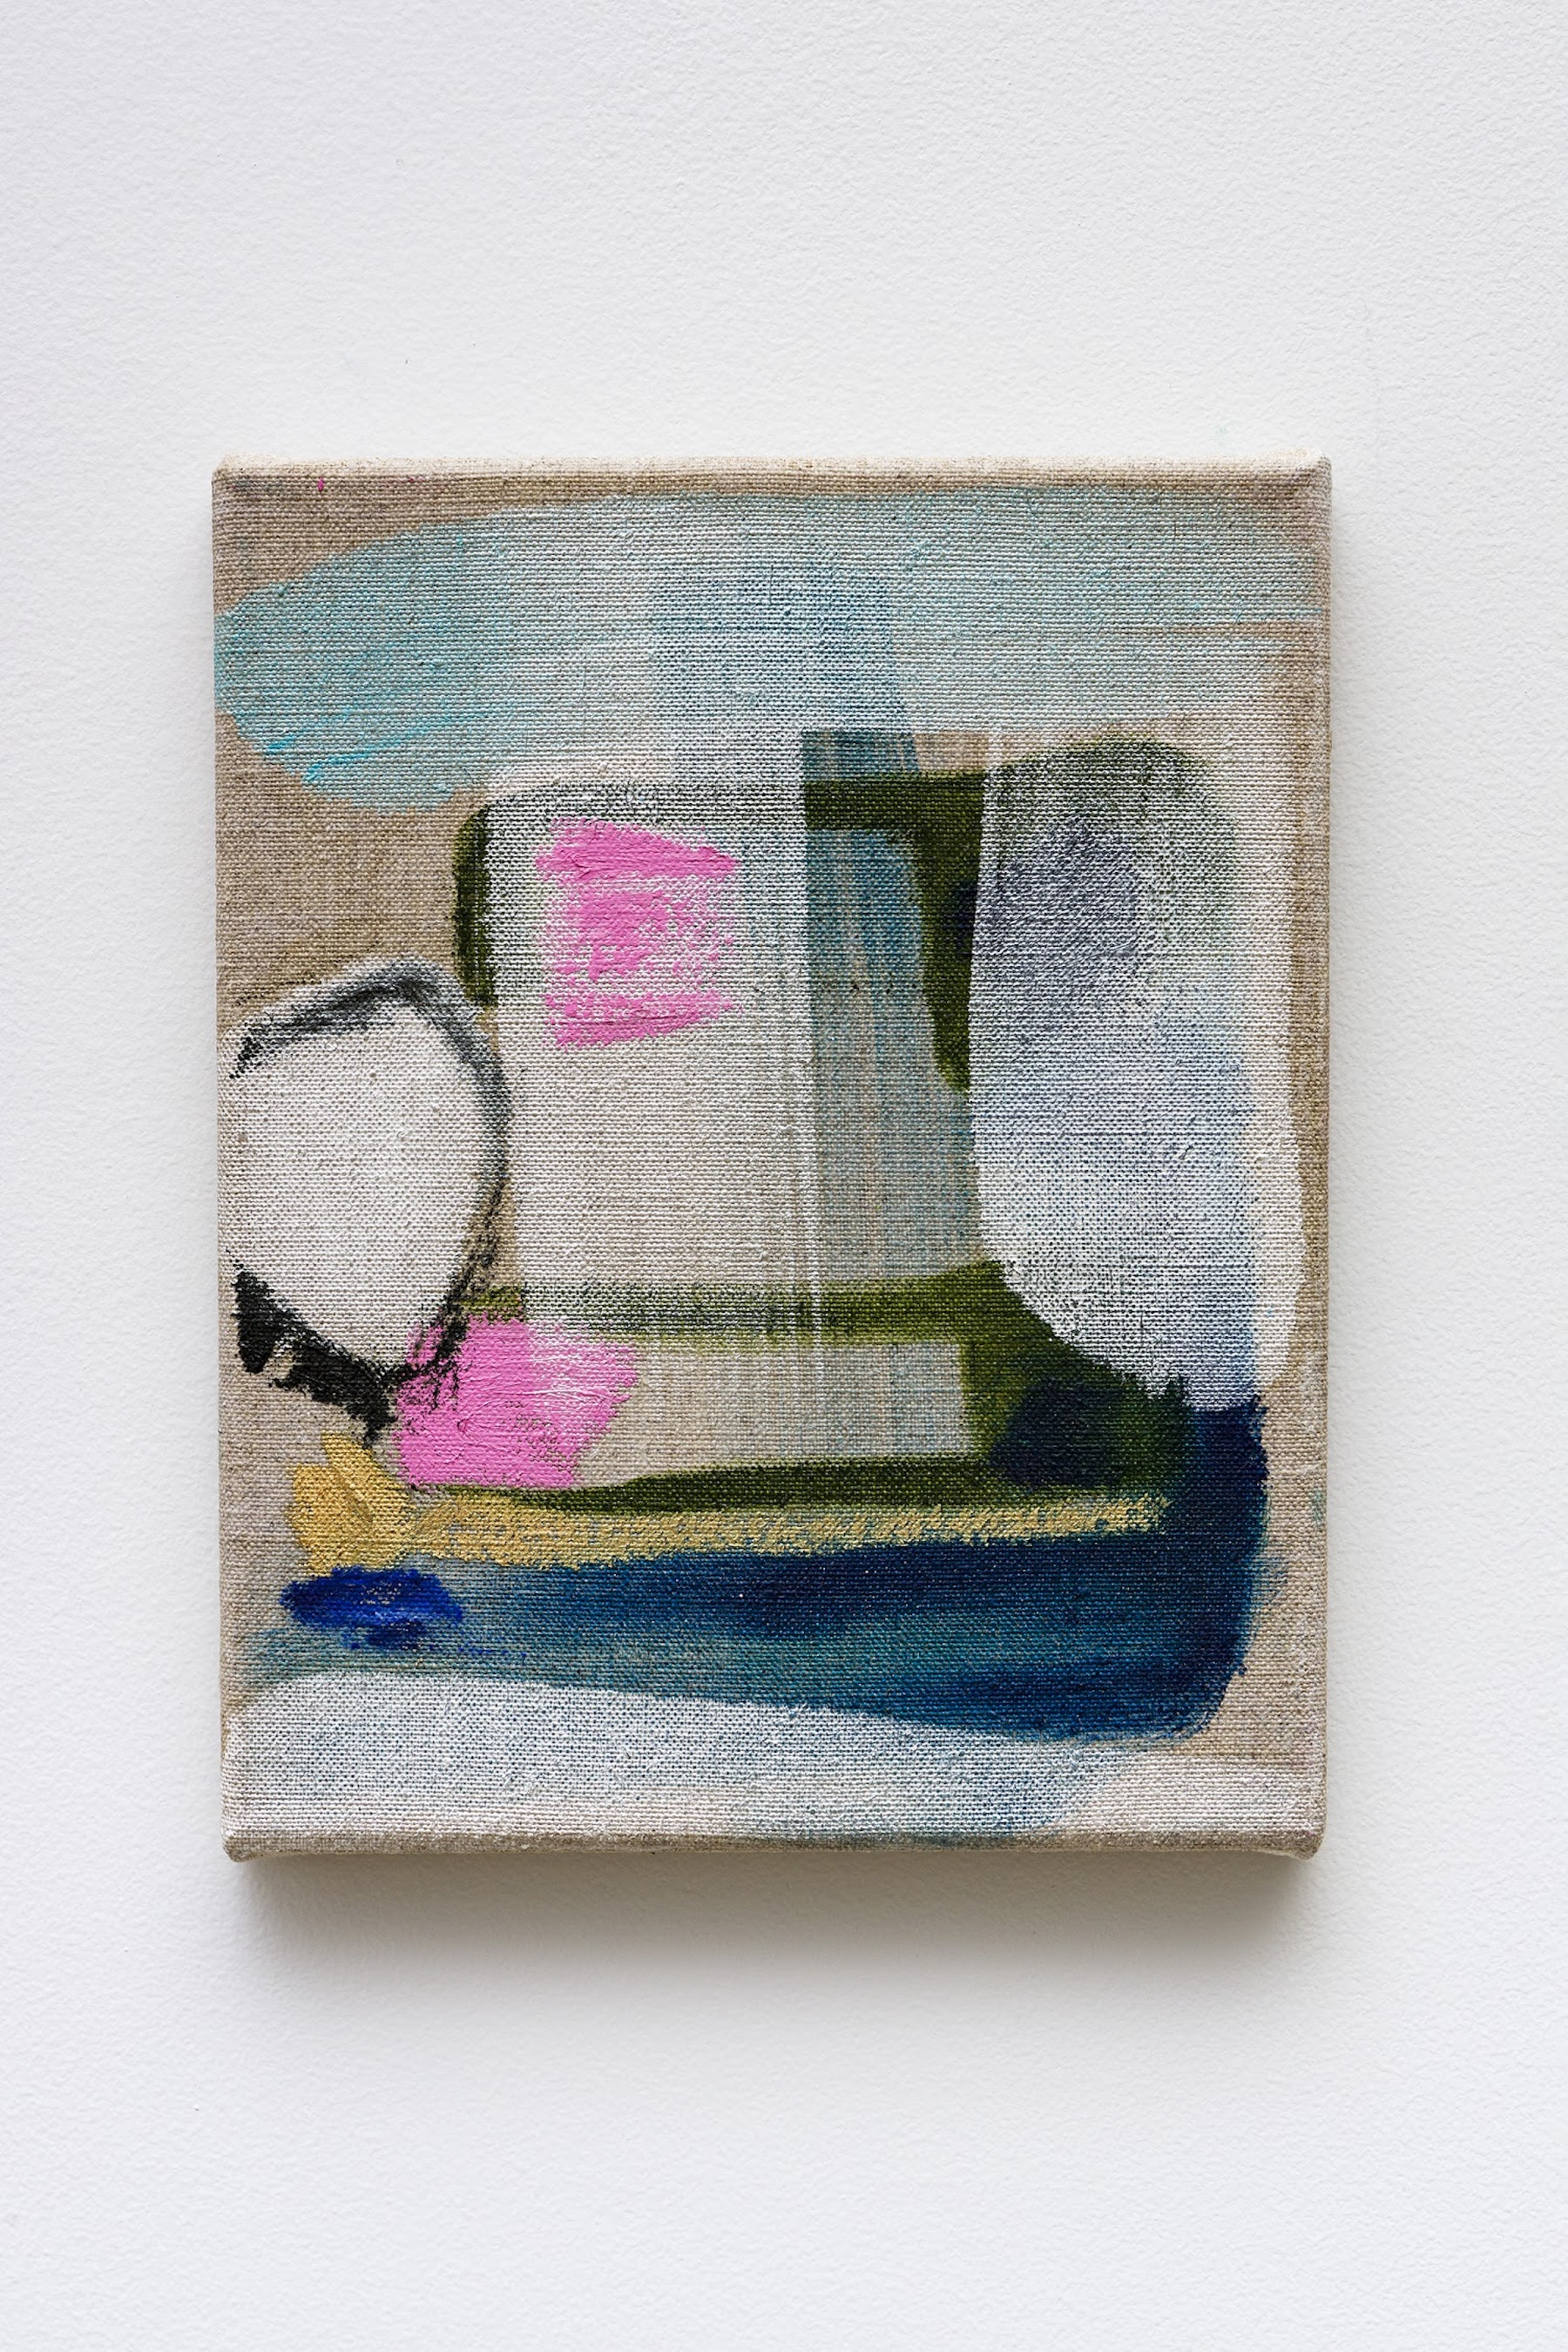 "Monique Van Genderen ""Untitled,"" 2020 Oil on linen 10 x 8"" [HxW] (25.4 x 20.32 cm) Inventory #VGE403 Courtesy of the artist and Vielmetter Los Angeles Photo credit: Jeff Mclane"